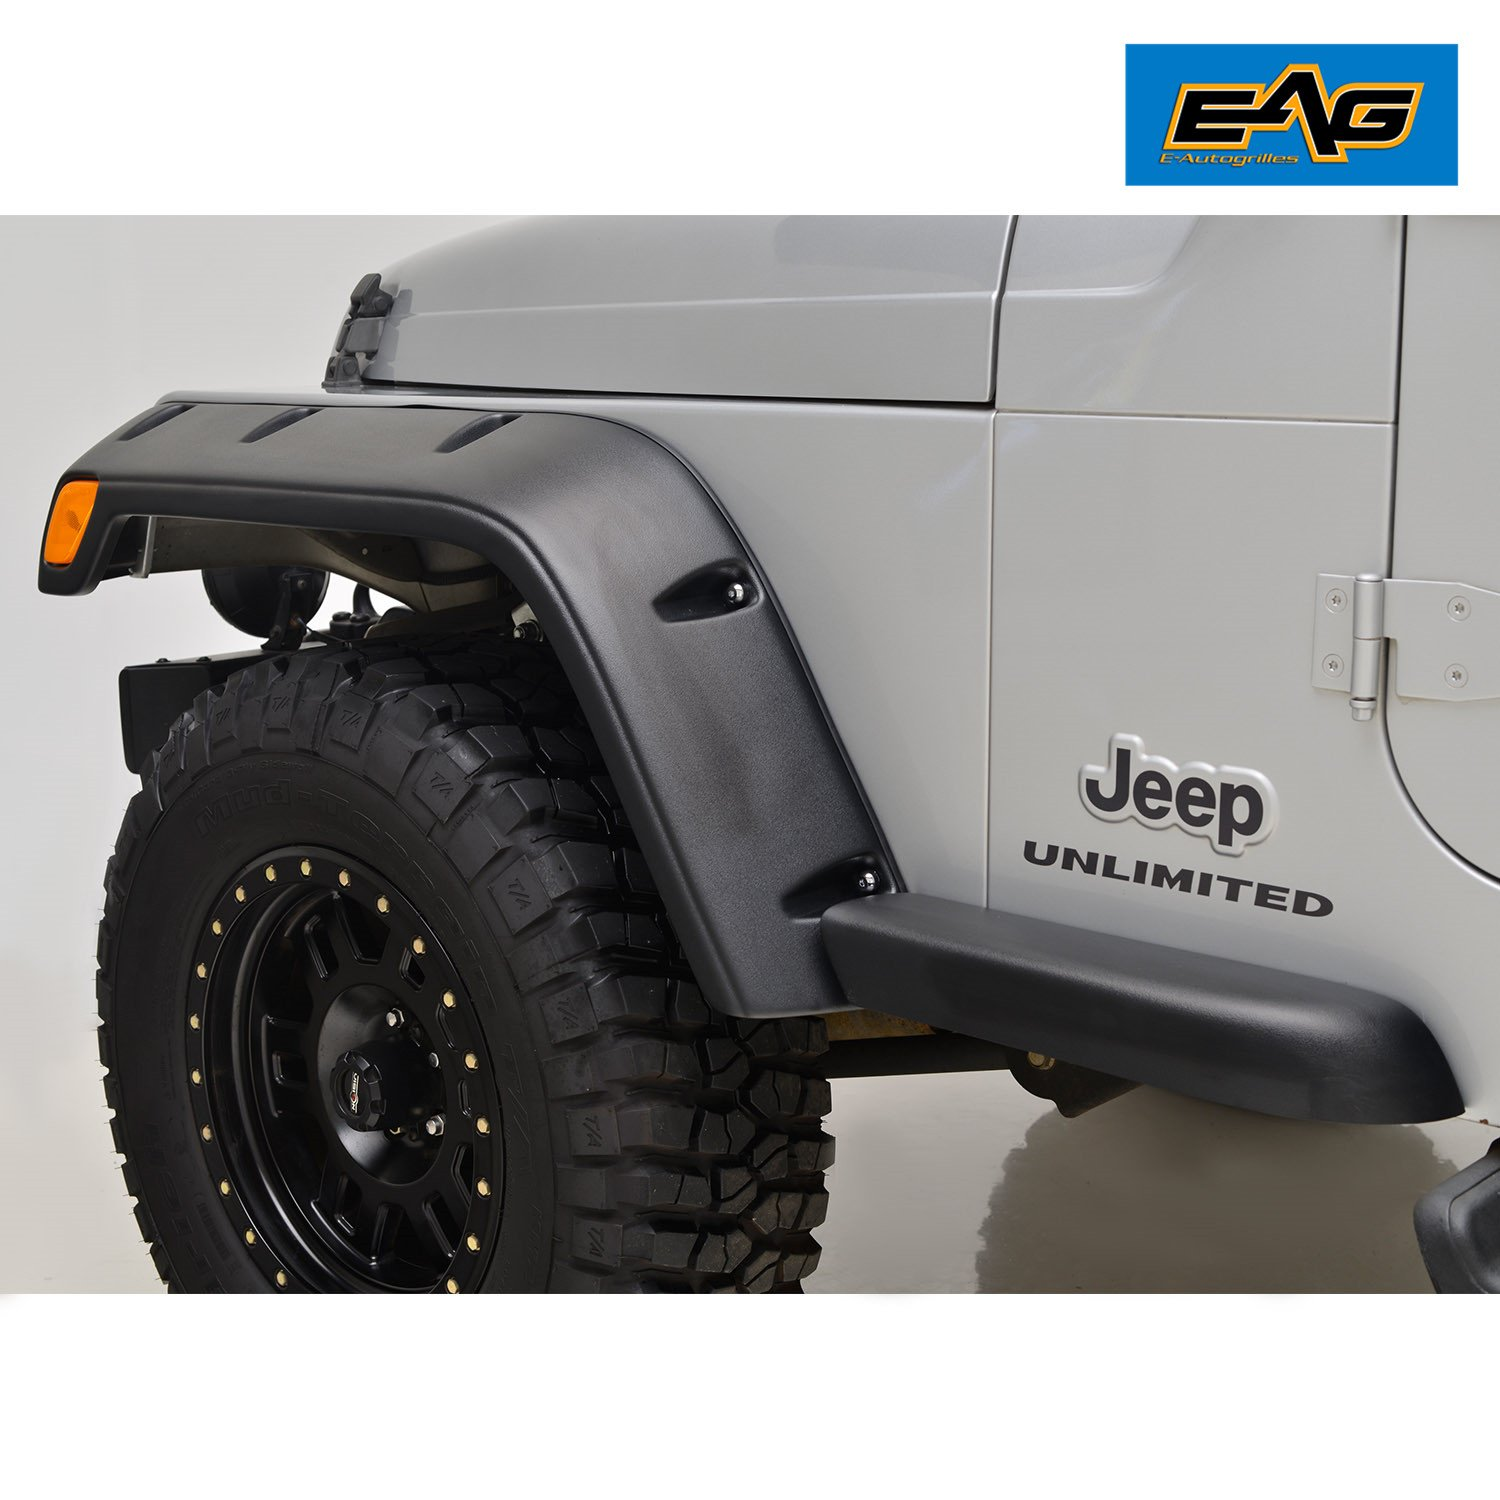 Eag 97 06 Jeep Wrangler Tj Fender Flares With Mounting Bushwackercom 4945 Bushwackerbuilds Jeepwranglerfrontenddiagram Hardware Pocket Style Automotive